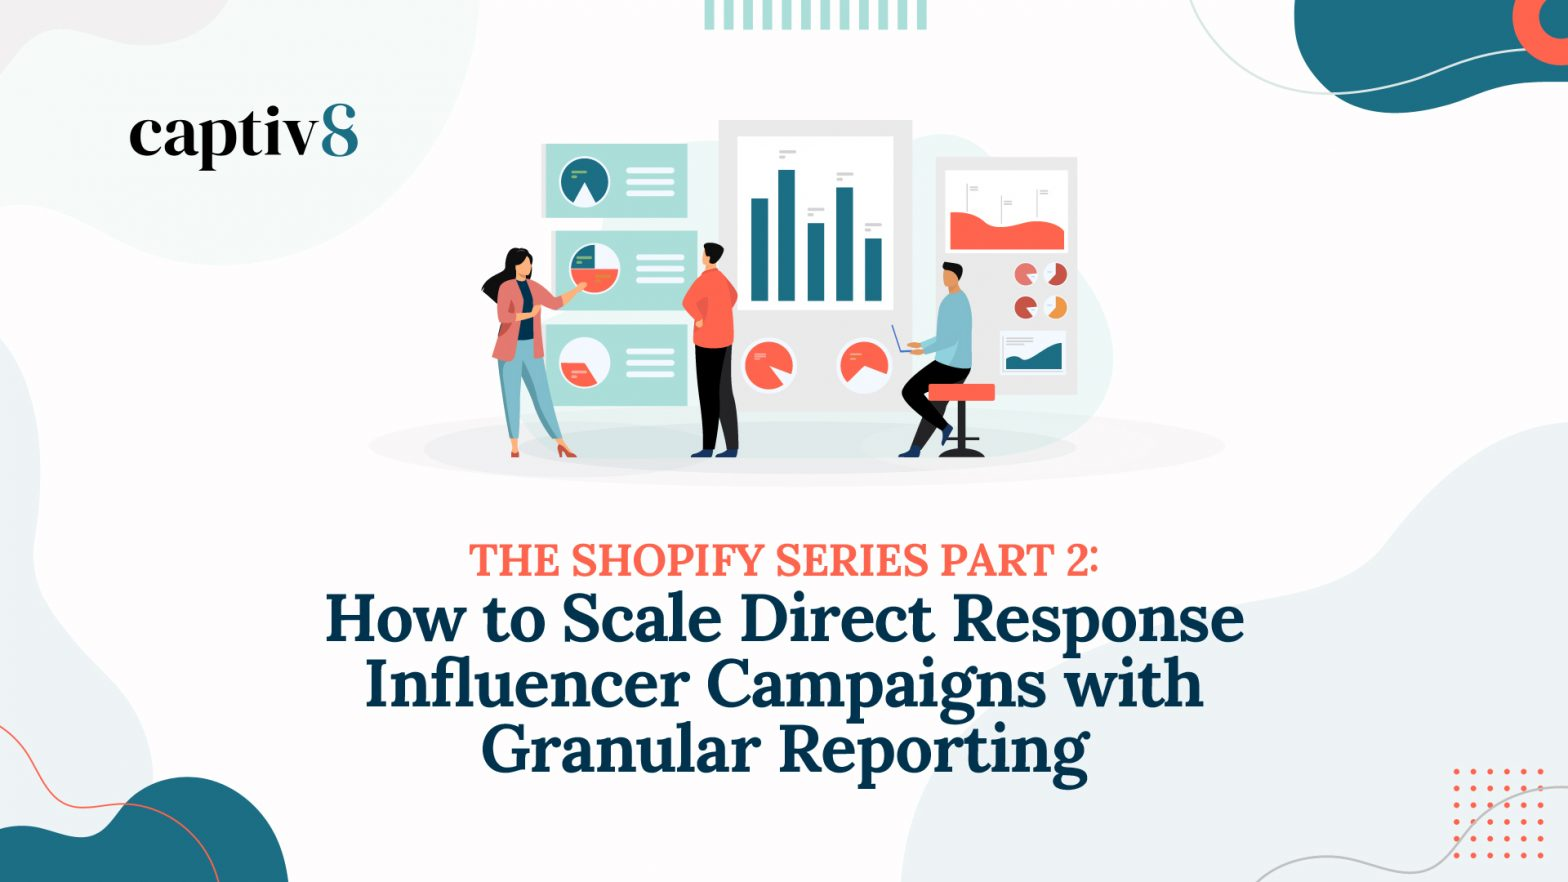 Influencer Campaigns